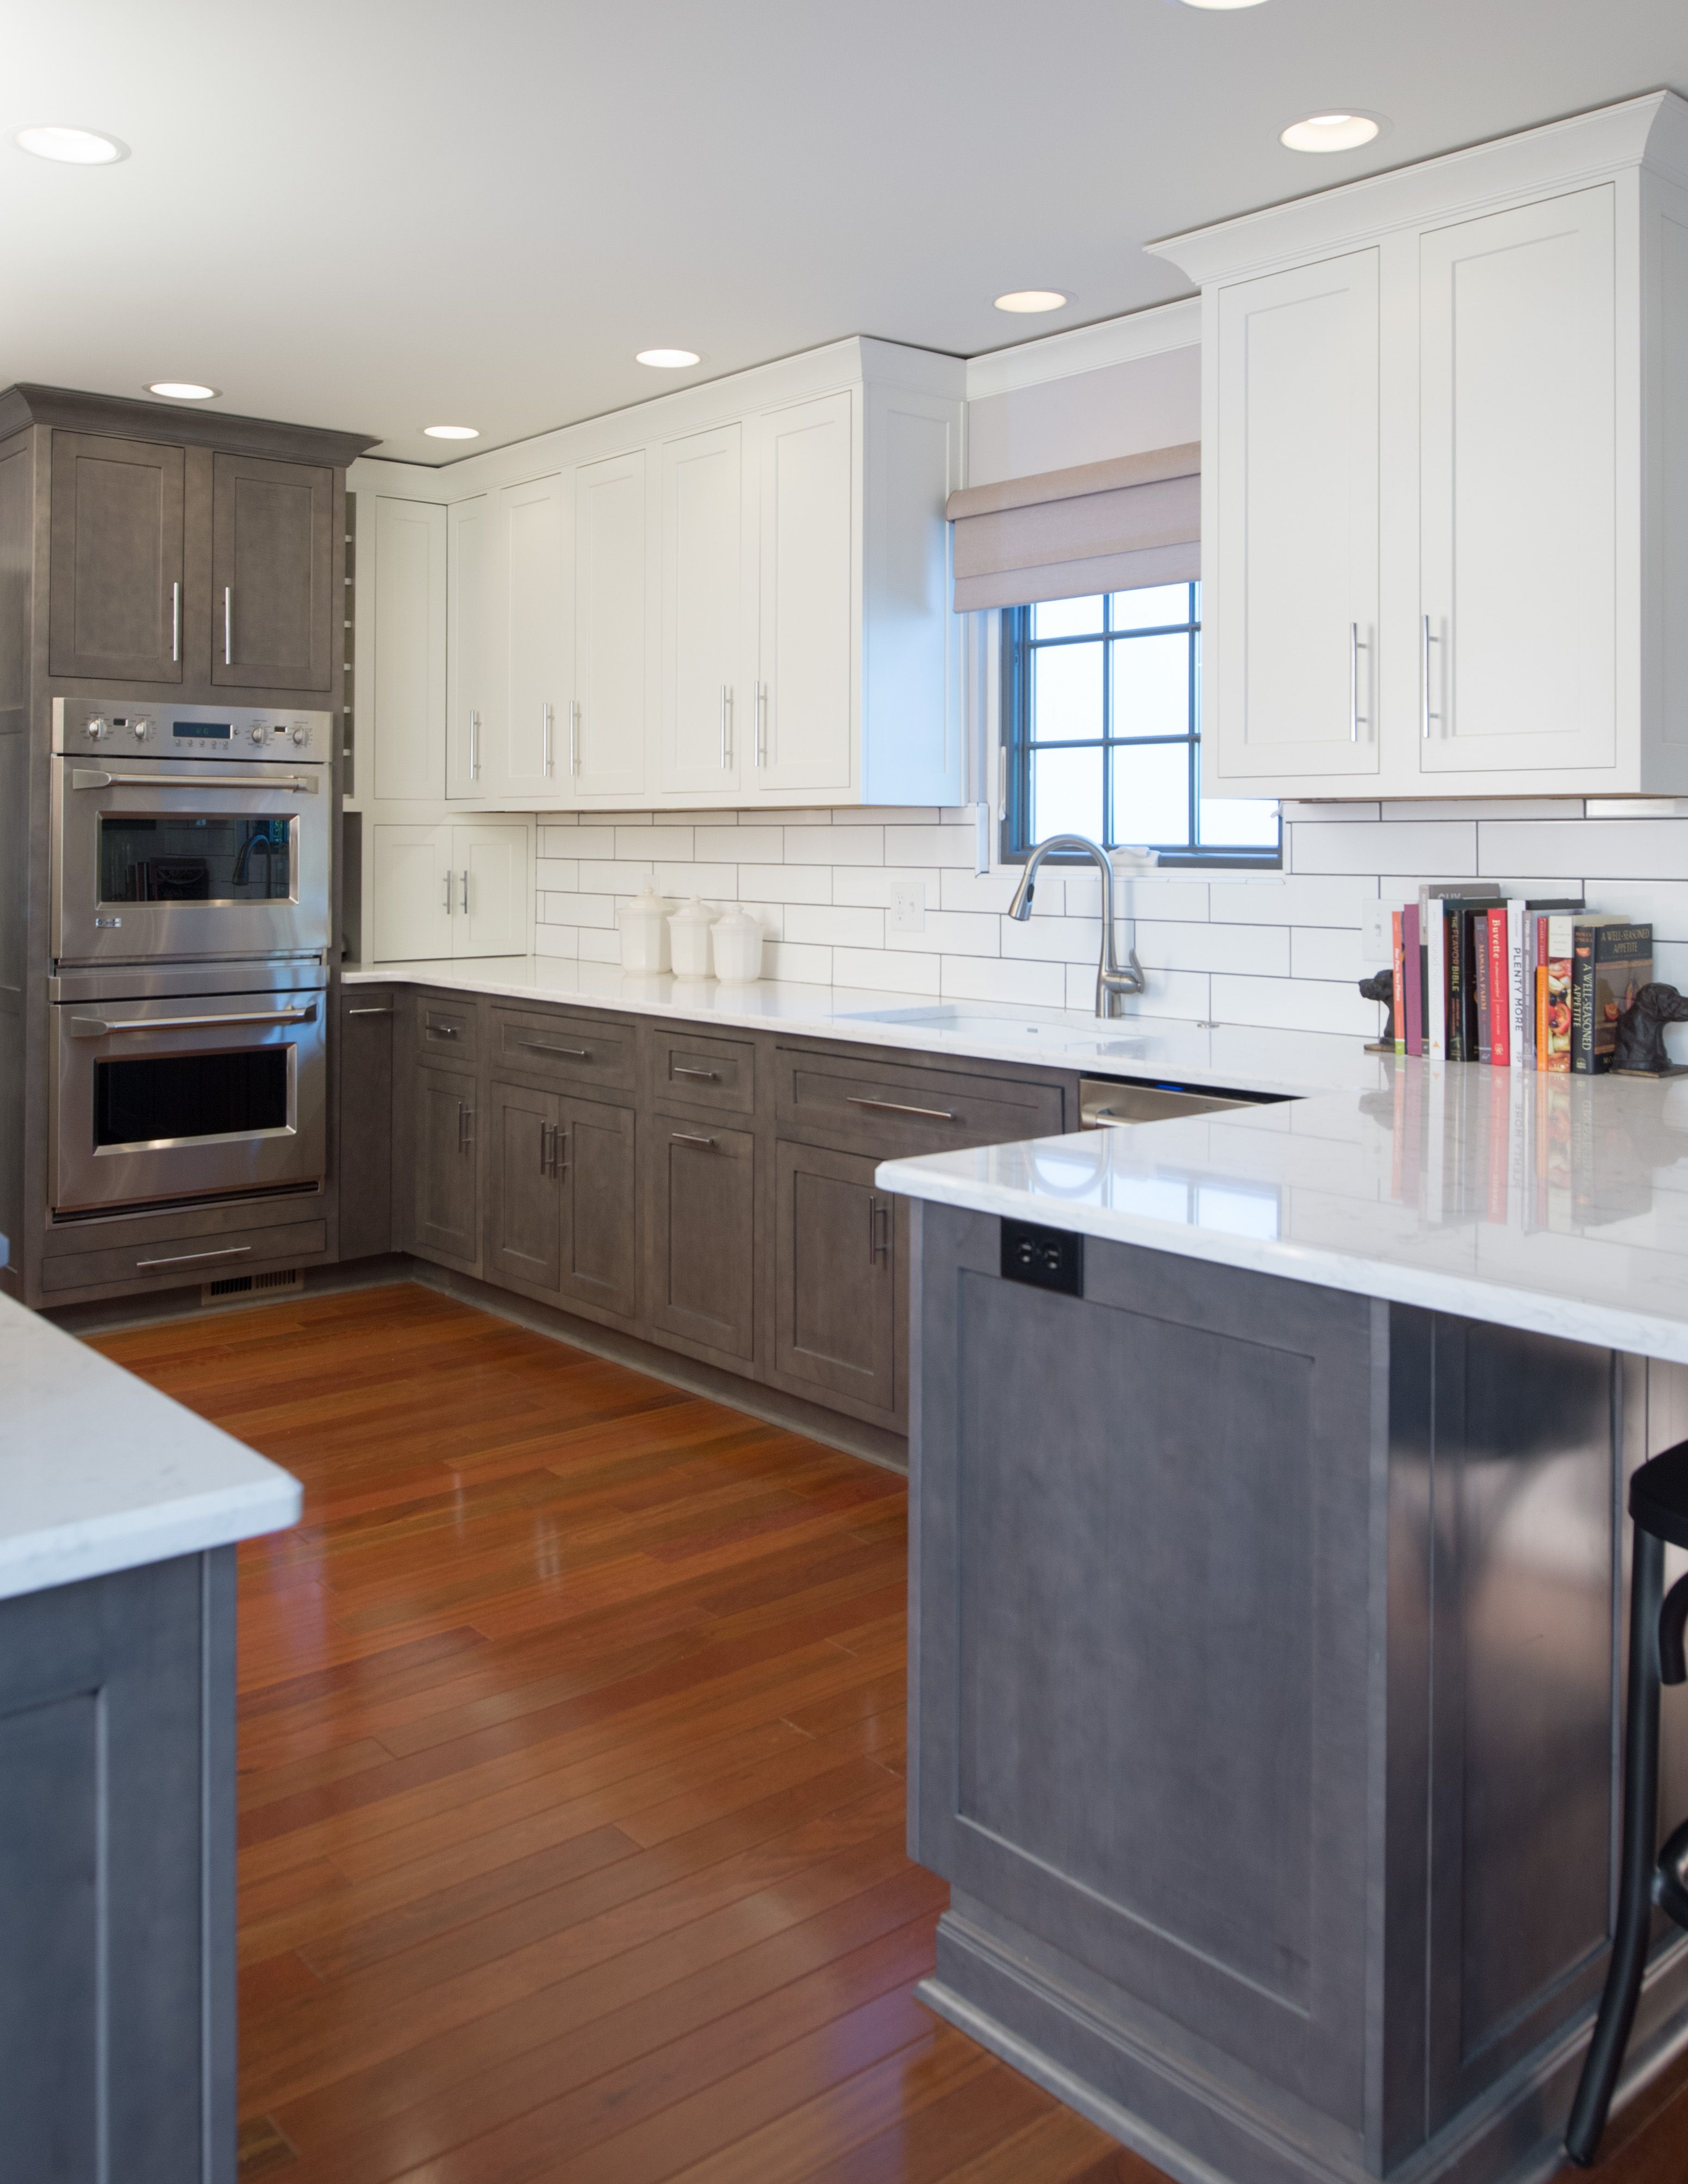 Best Lower Grey Stained And White Painted Upper Cabinets With 400 x 300